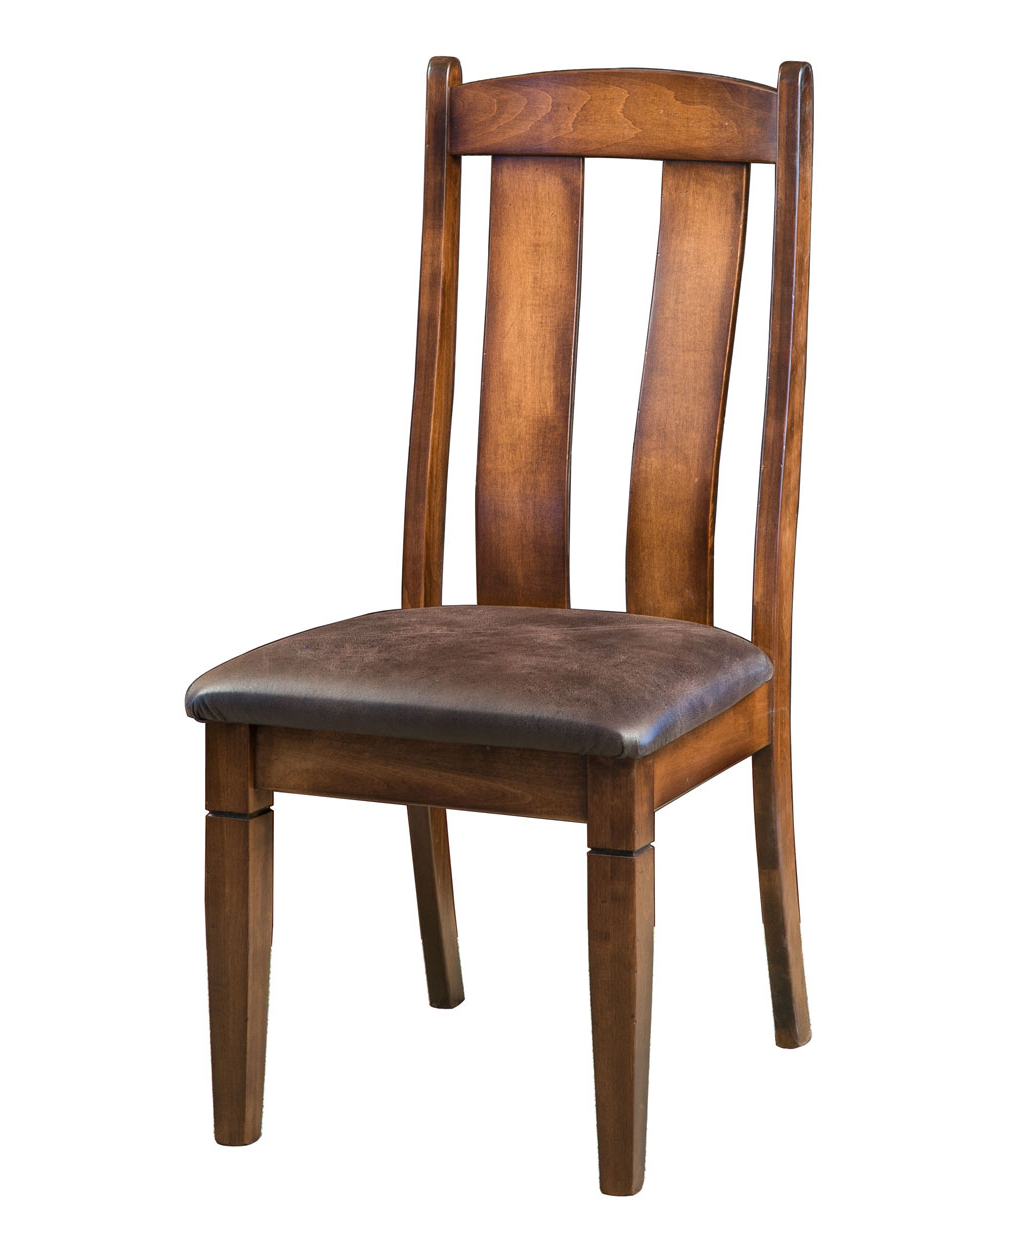 Best And Newest Mansfield Dining Chair – Amish Direct Furniture Inside Mansfield Cocoa Leather Sofa Chairs (Gallery 10 of 20)